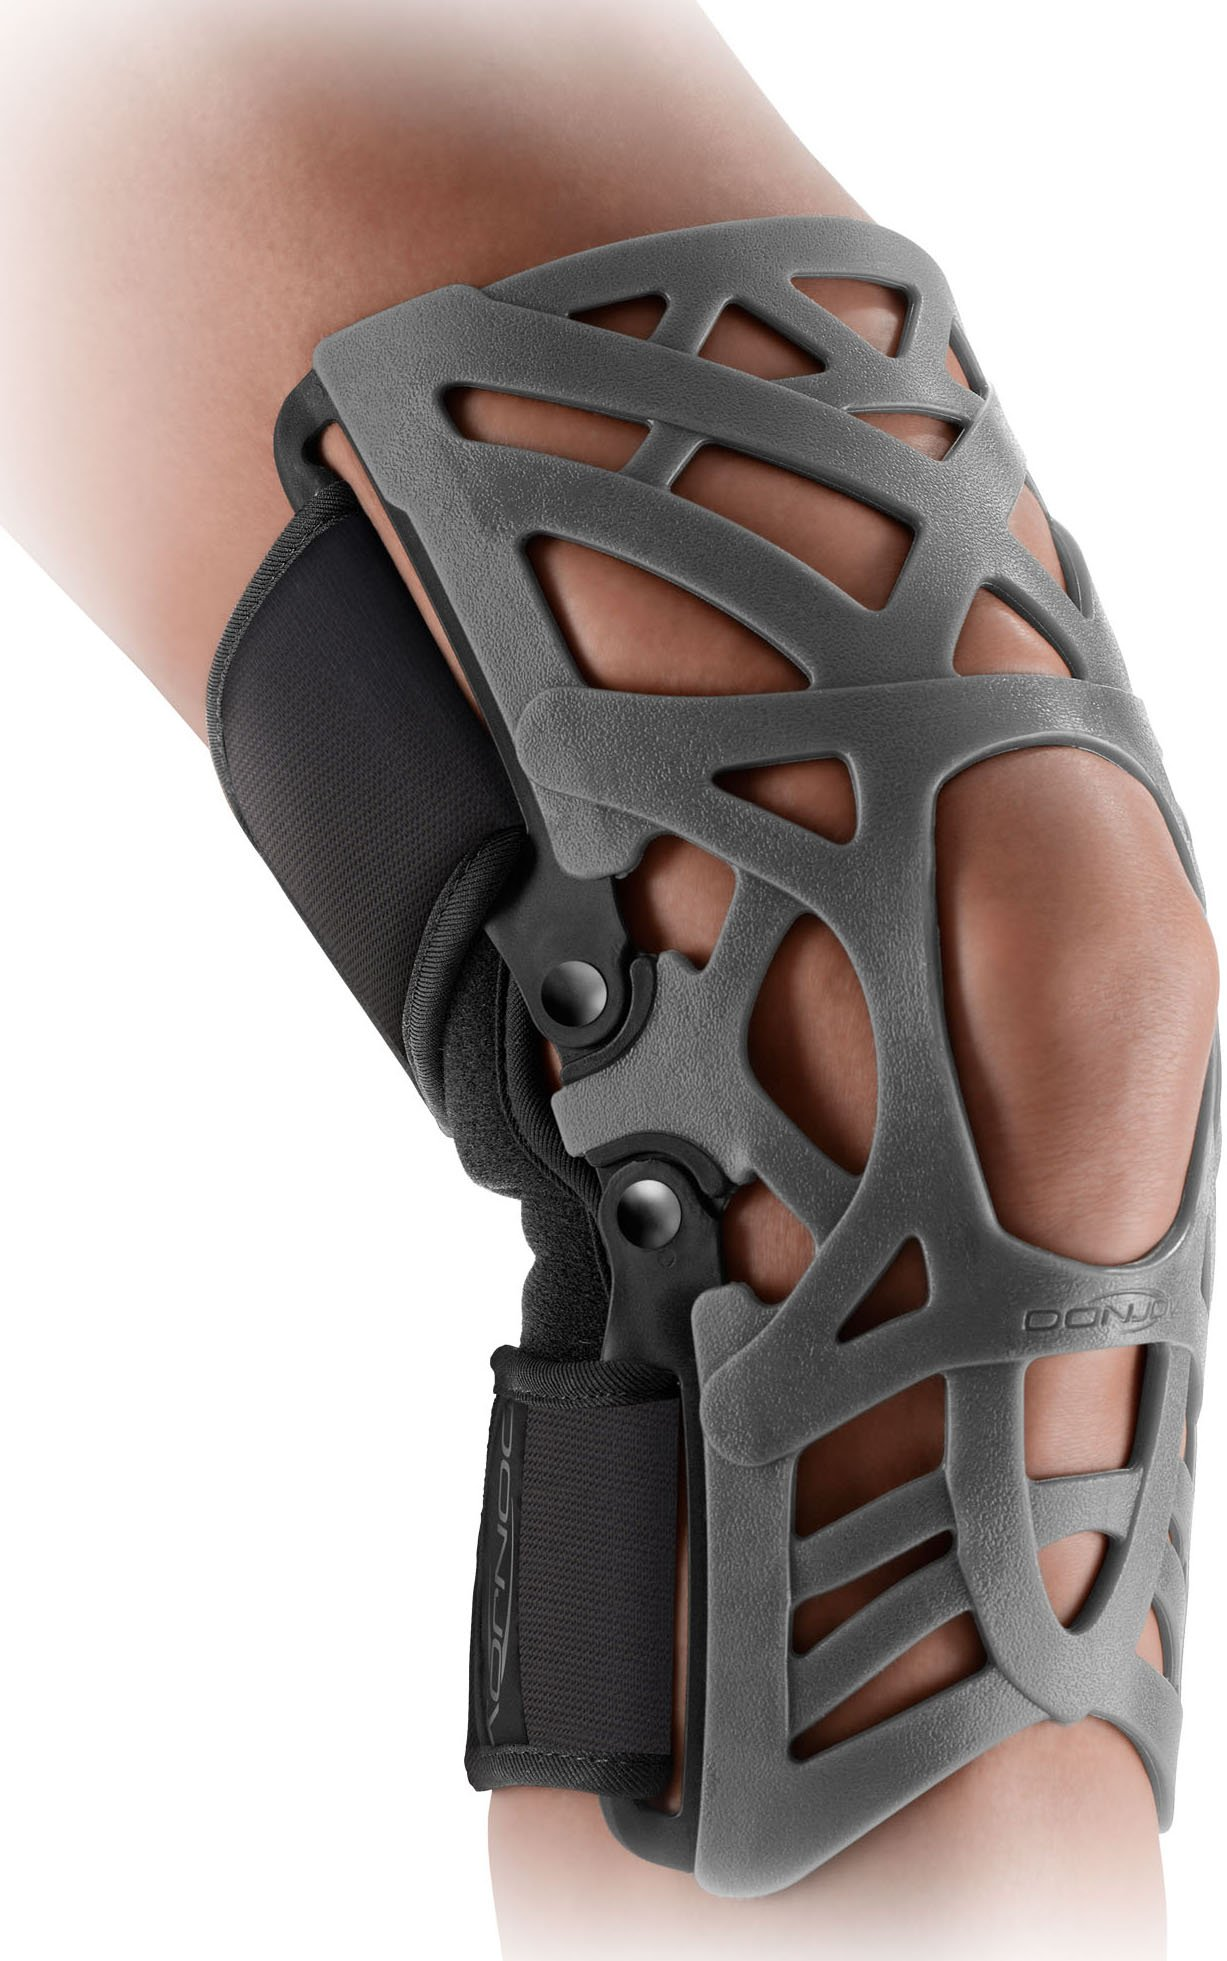 DonJoy Reaction Knee Brace - Grey, XL/XXL